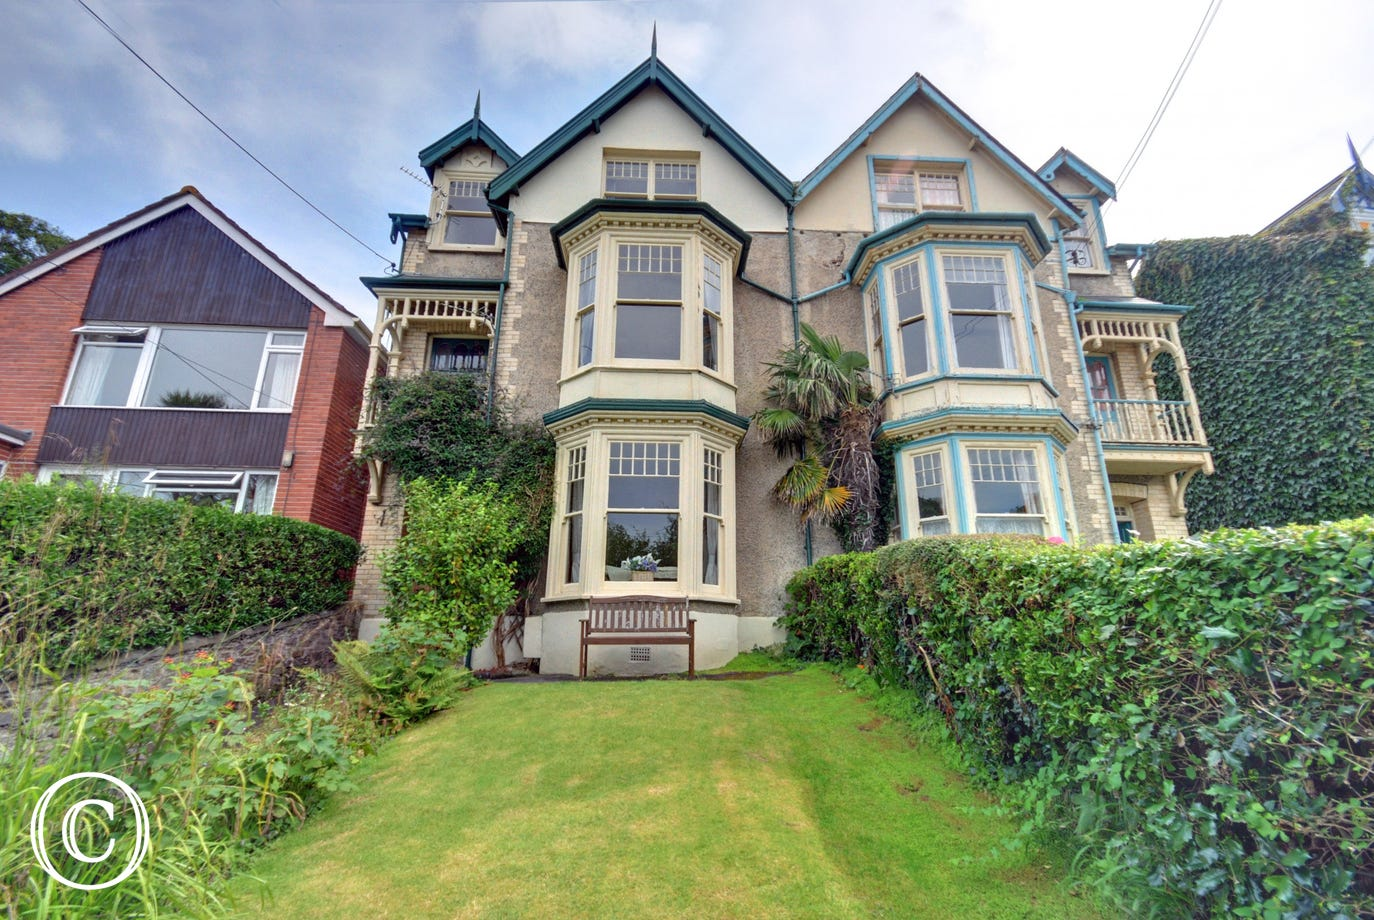 Craigmore is a spacious period property situated in an elevated position just a short walk from seaside village of Combe Martin